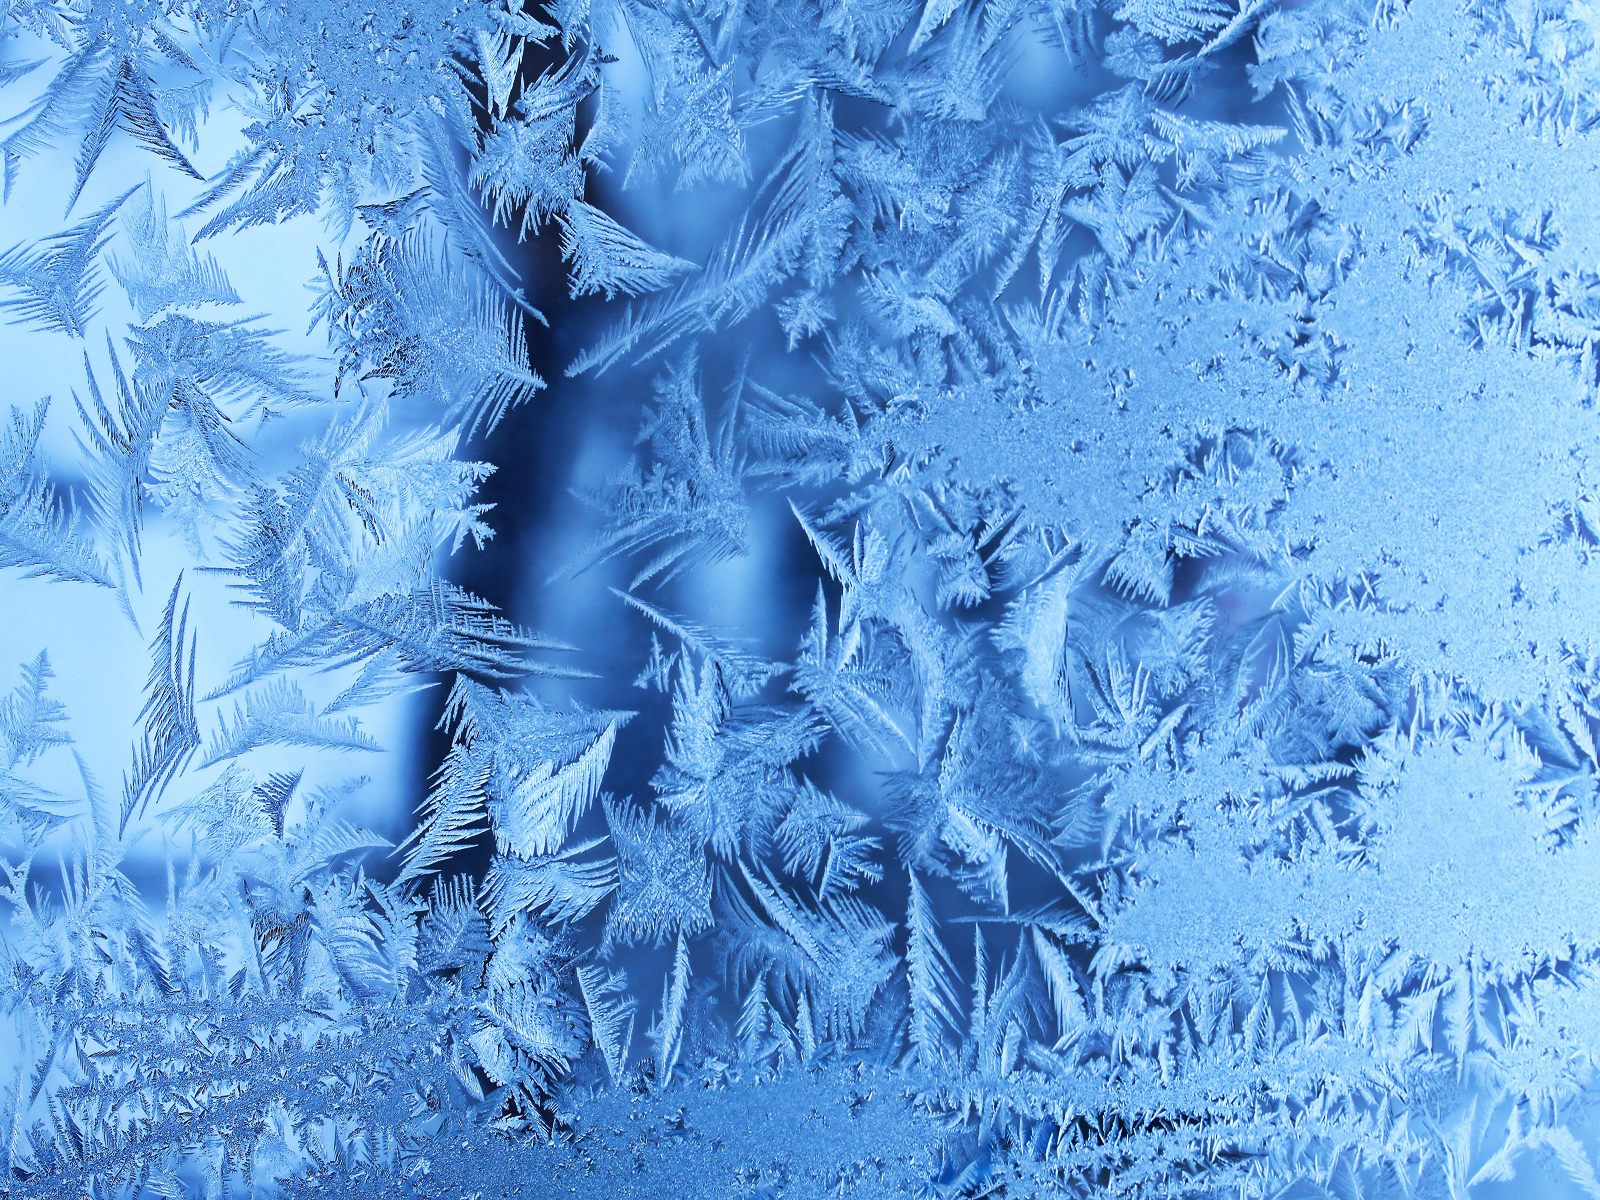 frost on glass wallpapers - photo #22